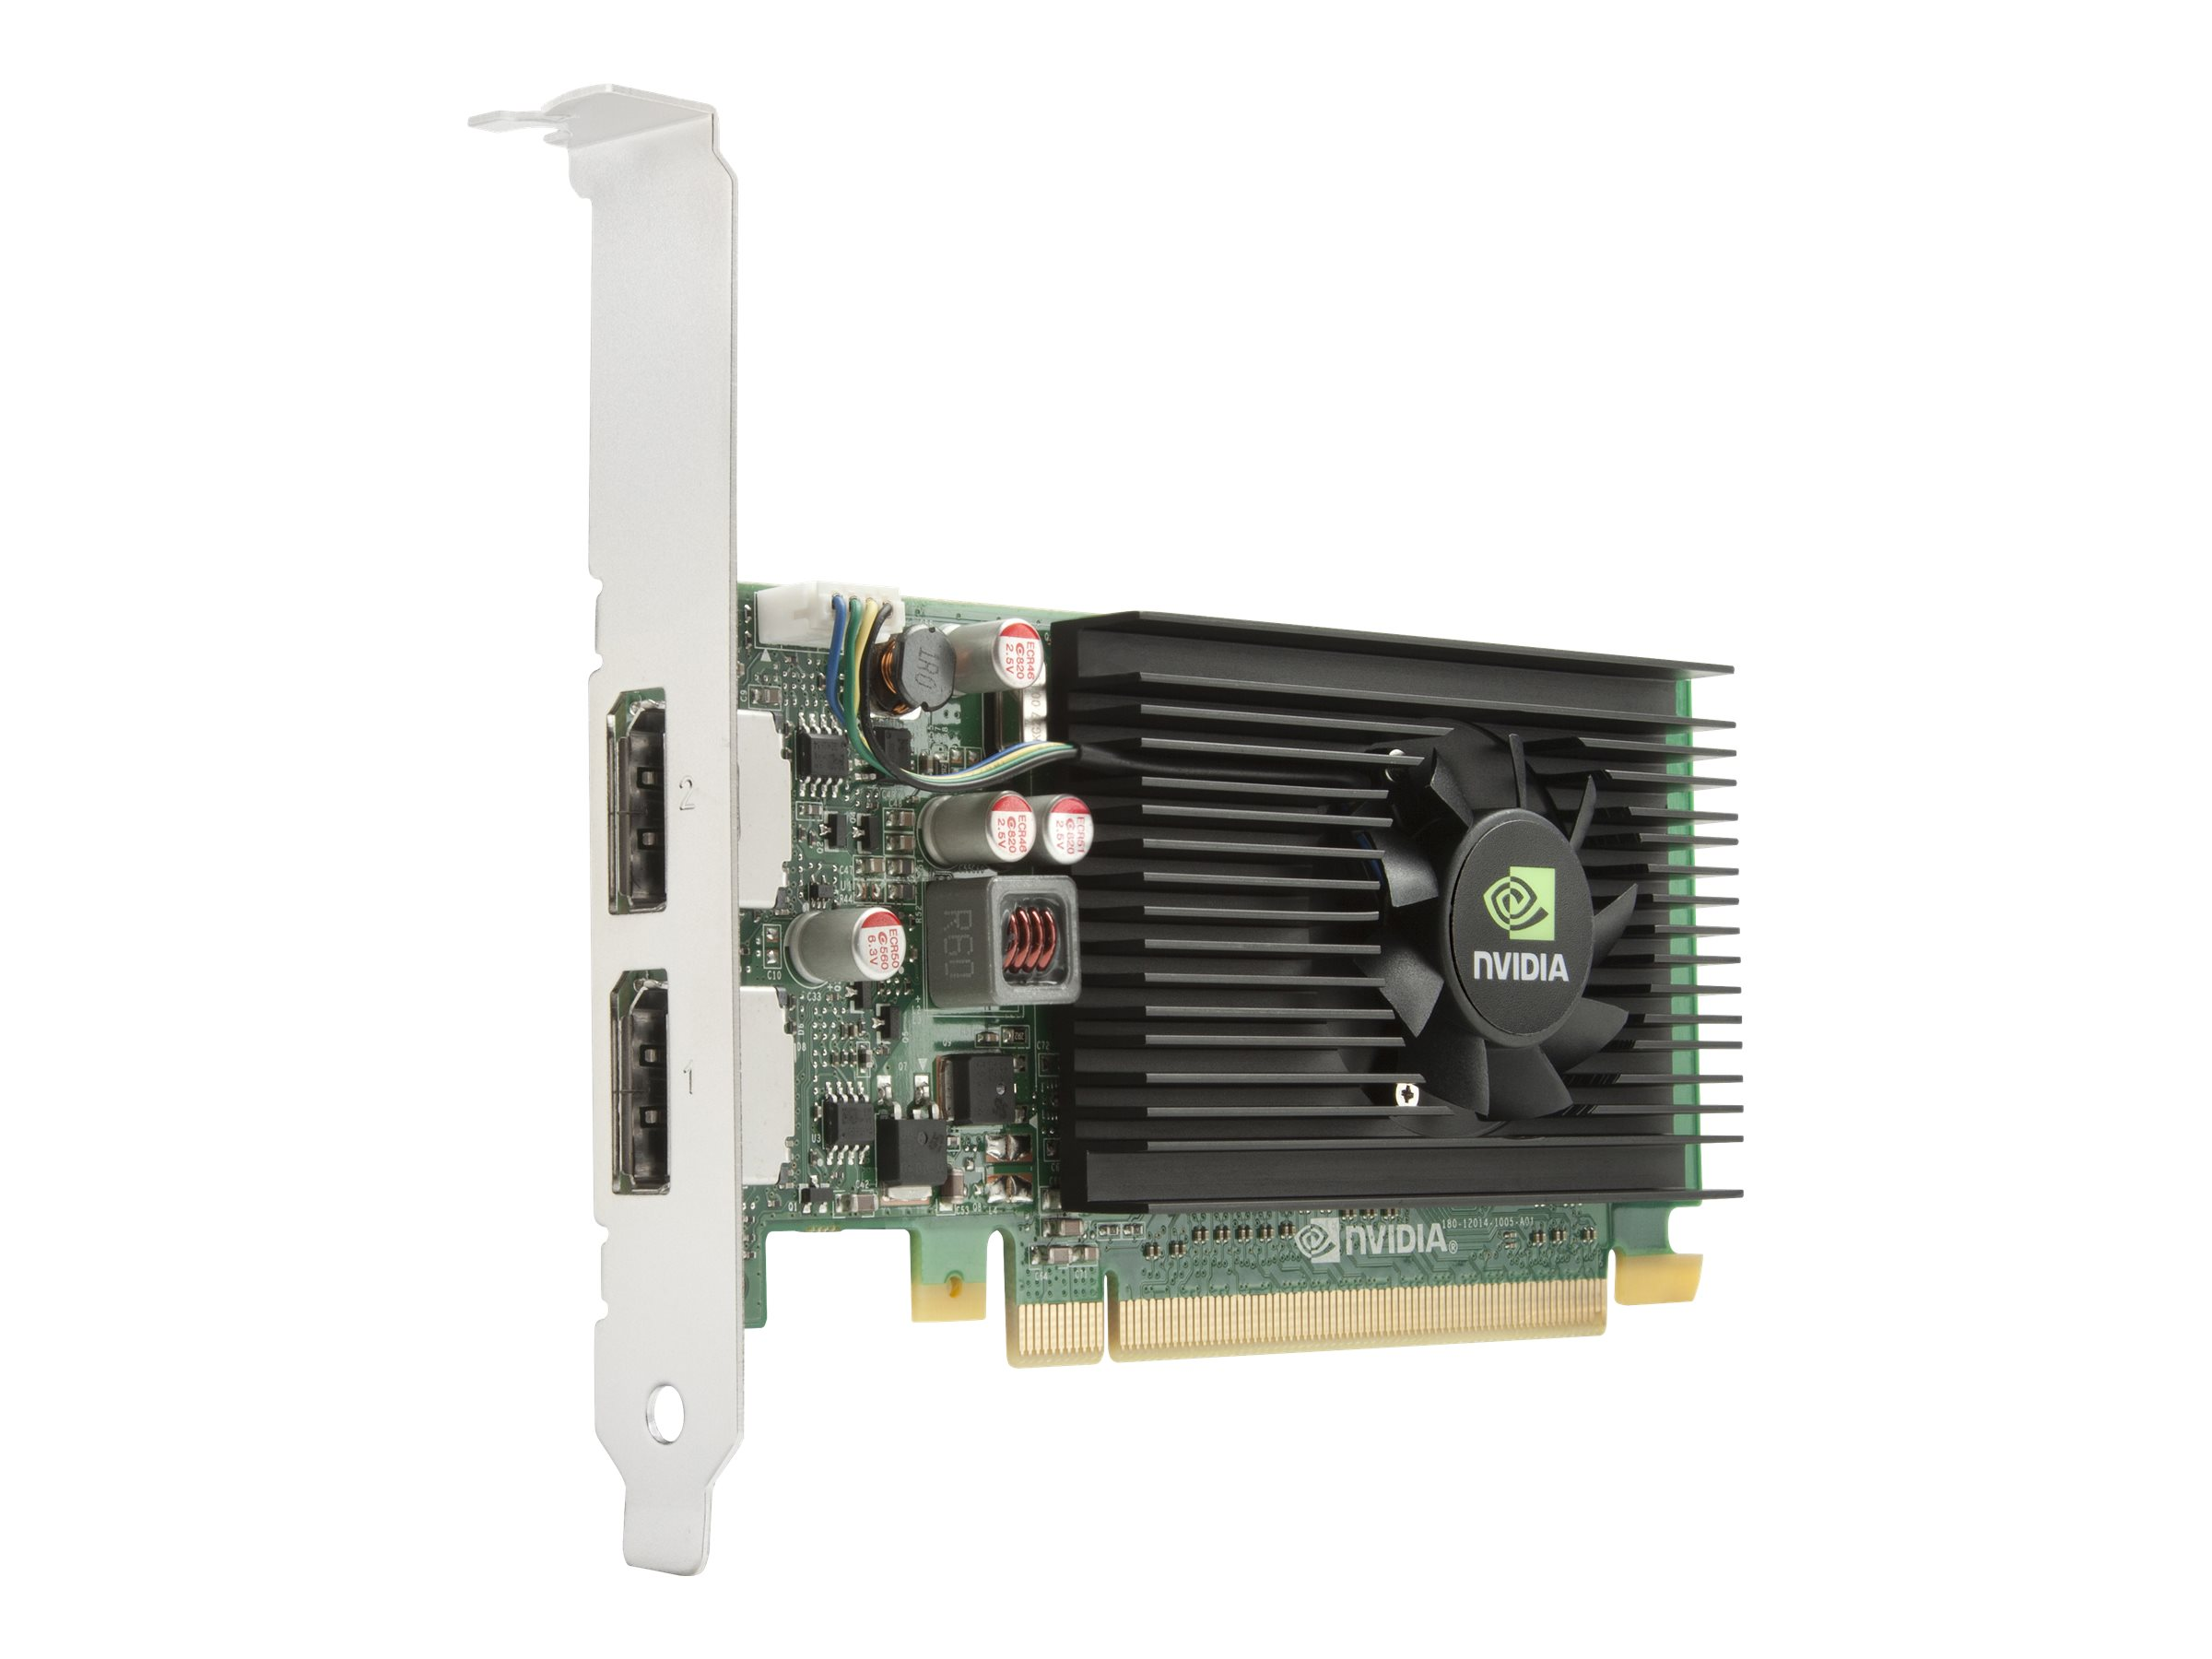 NVIDIA NVS 310 - Grafikkarten - Quadro NVS 310 - 1 GB DDR3 - PCIe 2.0 x16 Low Profile - 2 x DisplayPort